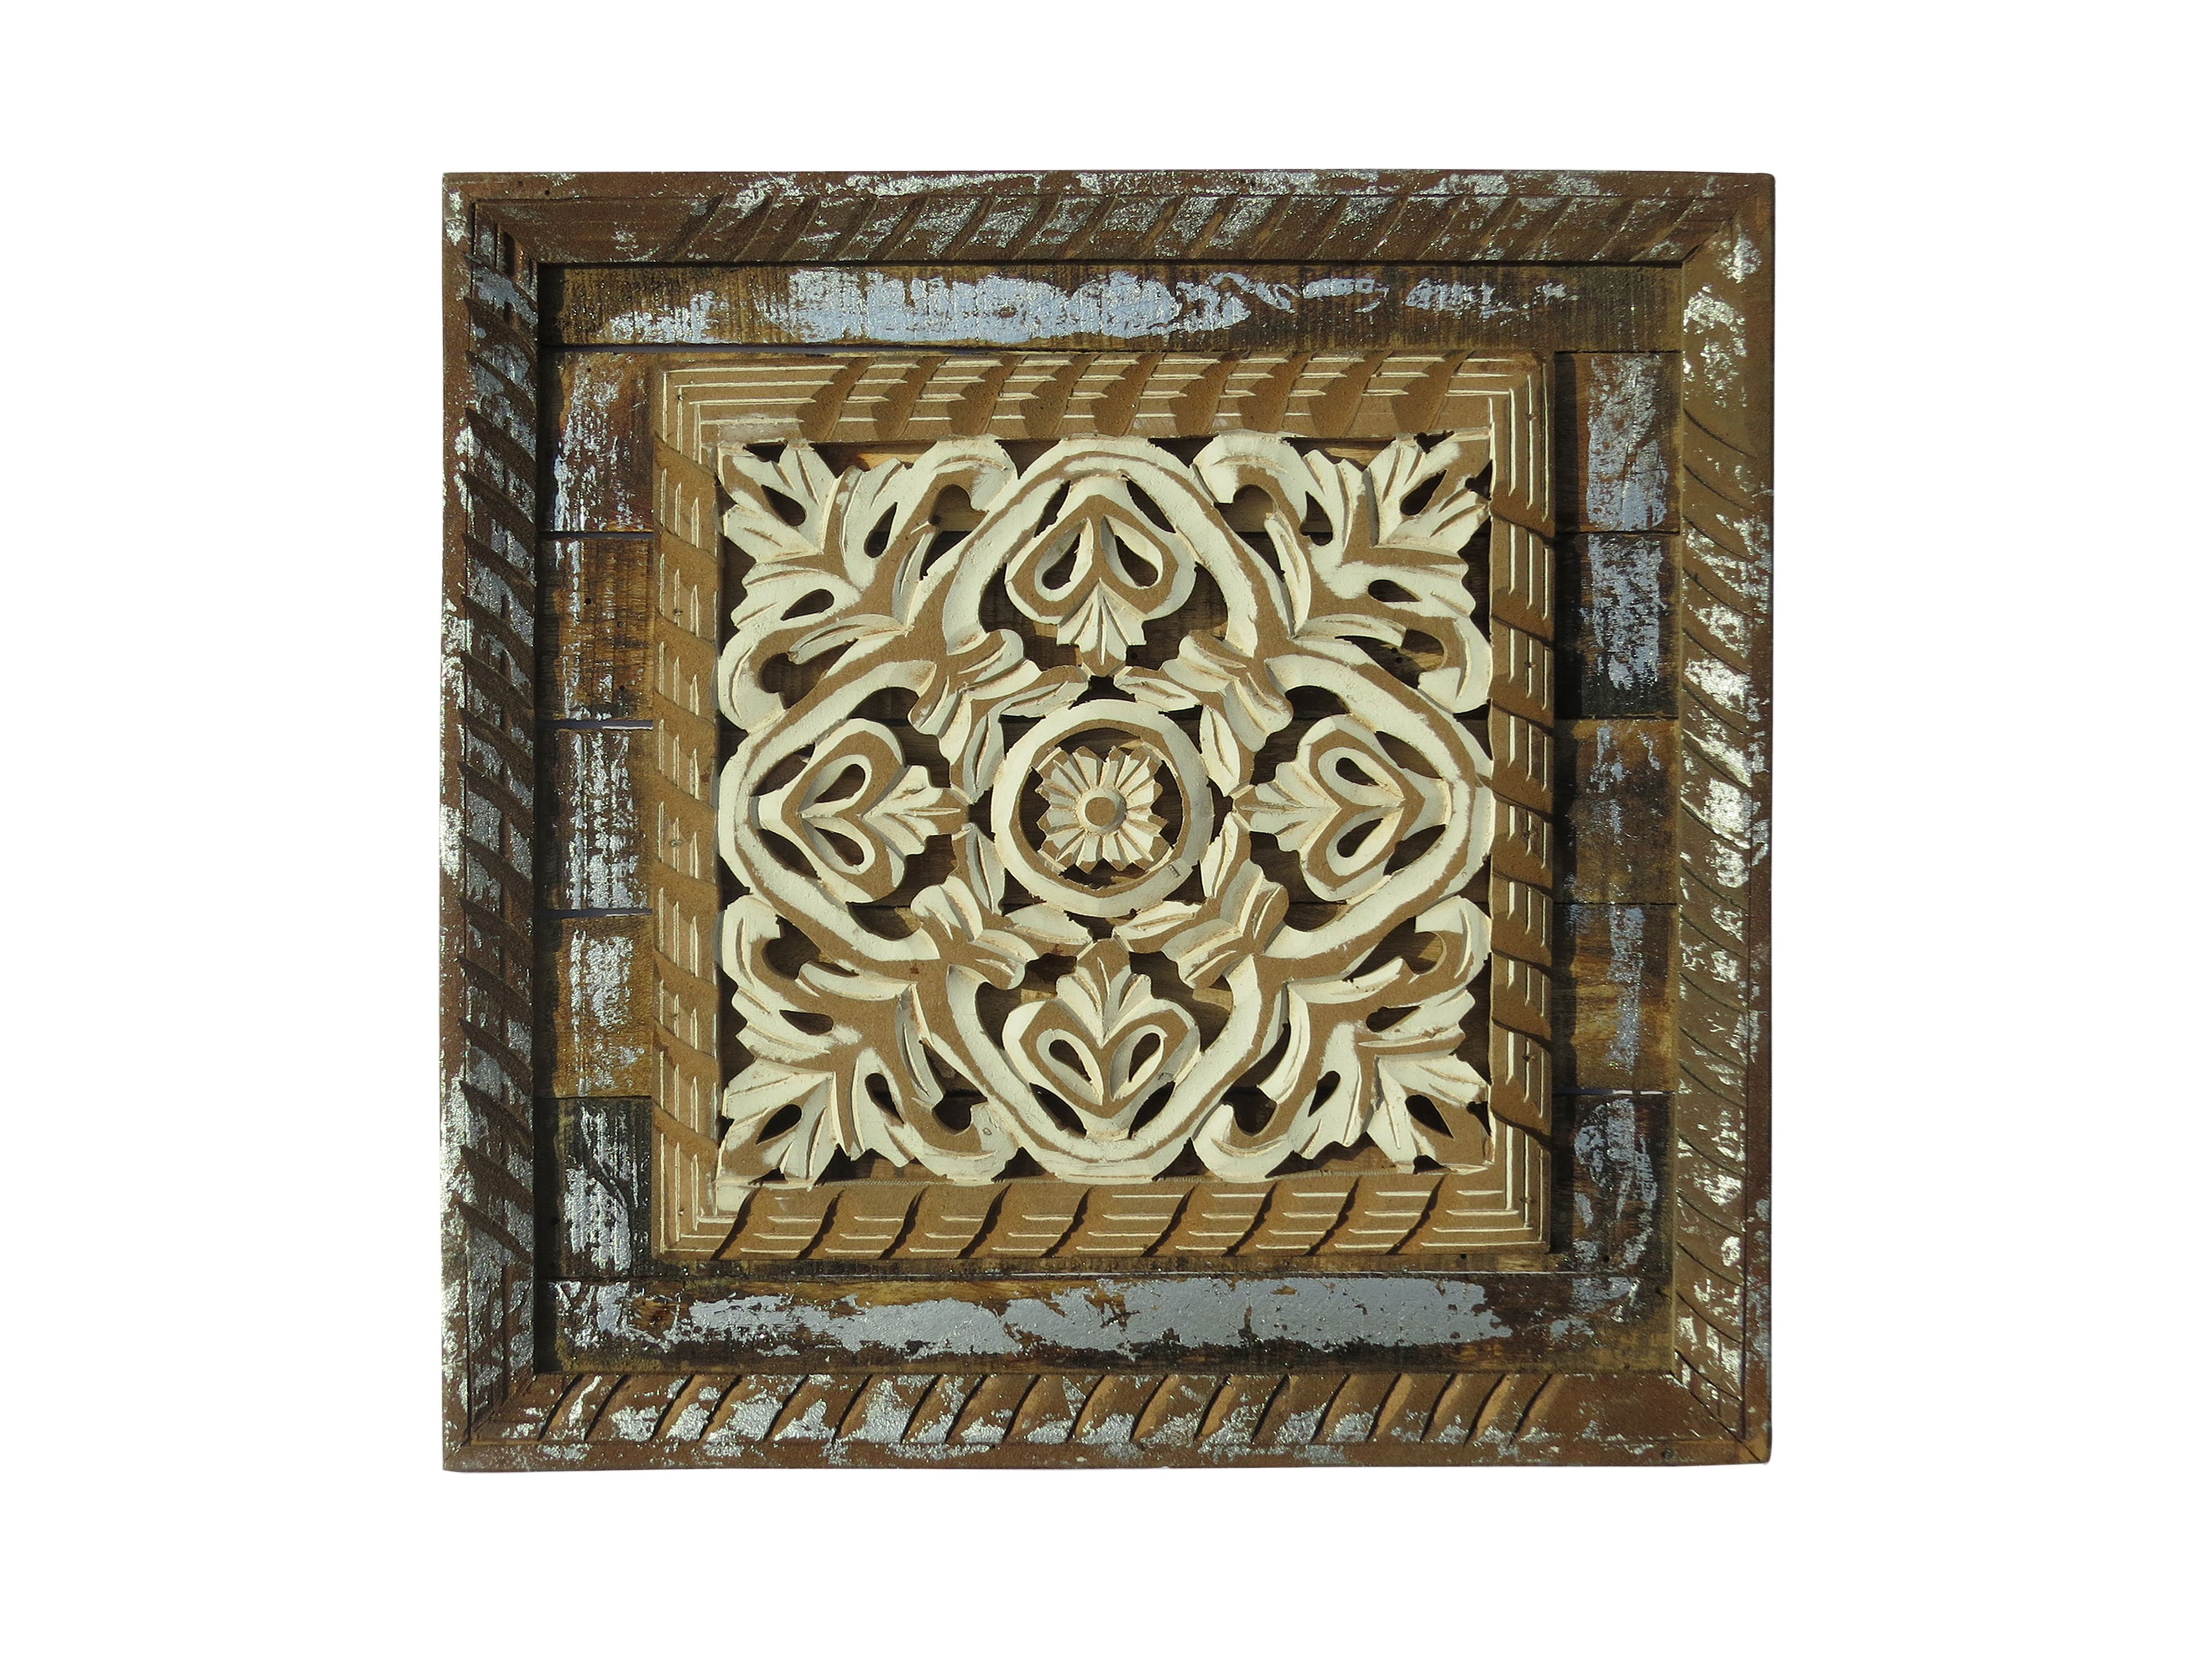 Mdf Carved Panel Design In Natural Brown And Cream Finish Reliable Durable Indian Authentic Handicrafts Wit Hand Carved Wood Class Decoration Wood Paneling